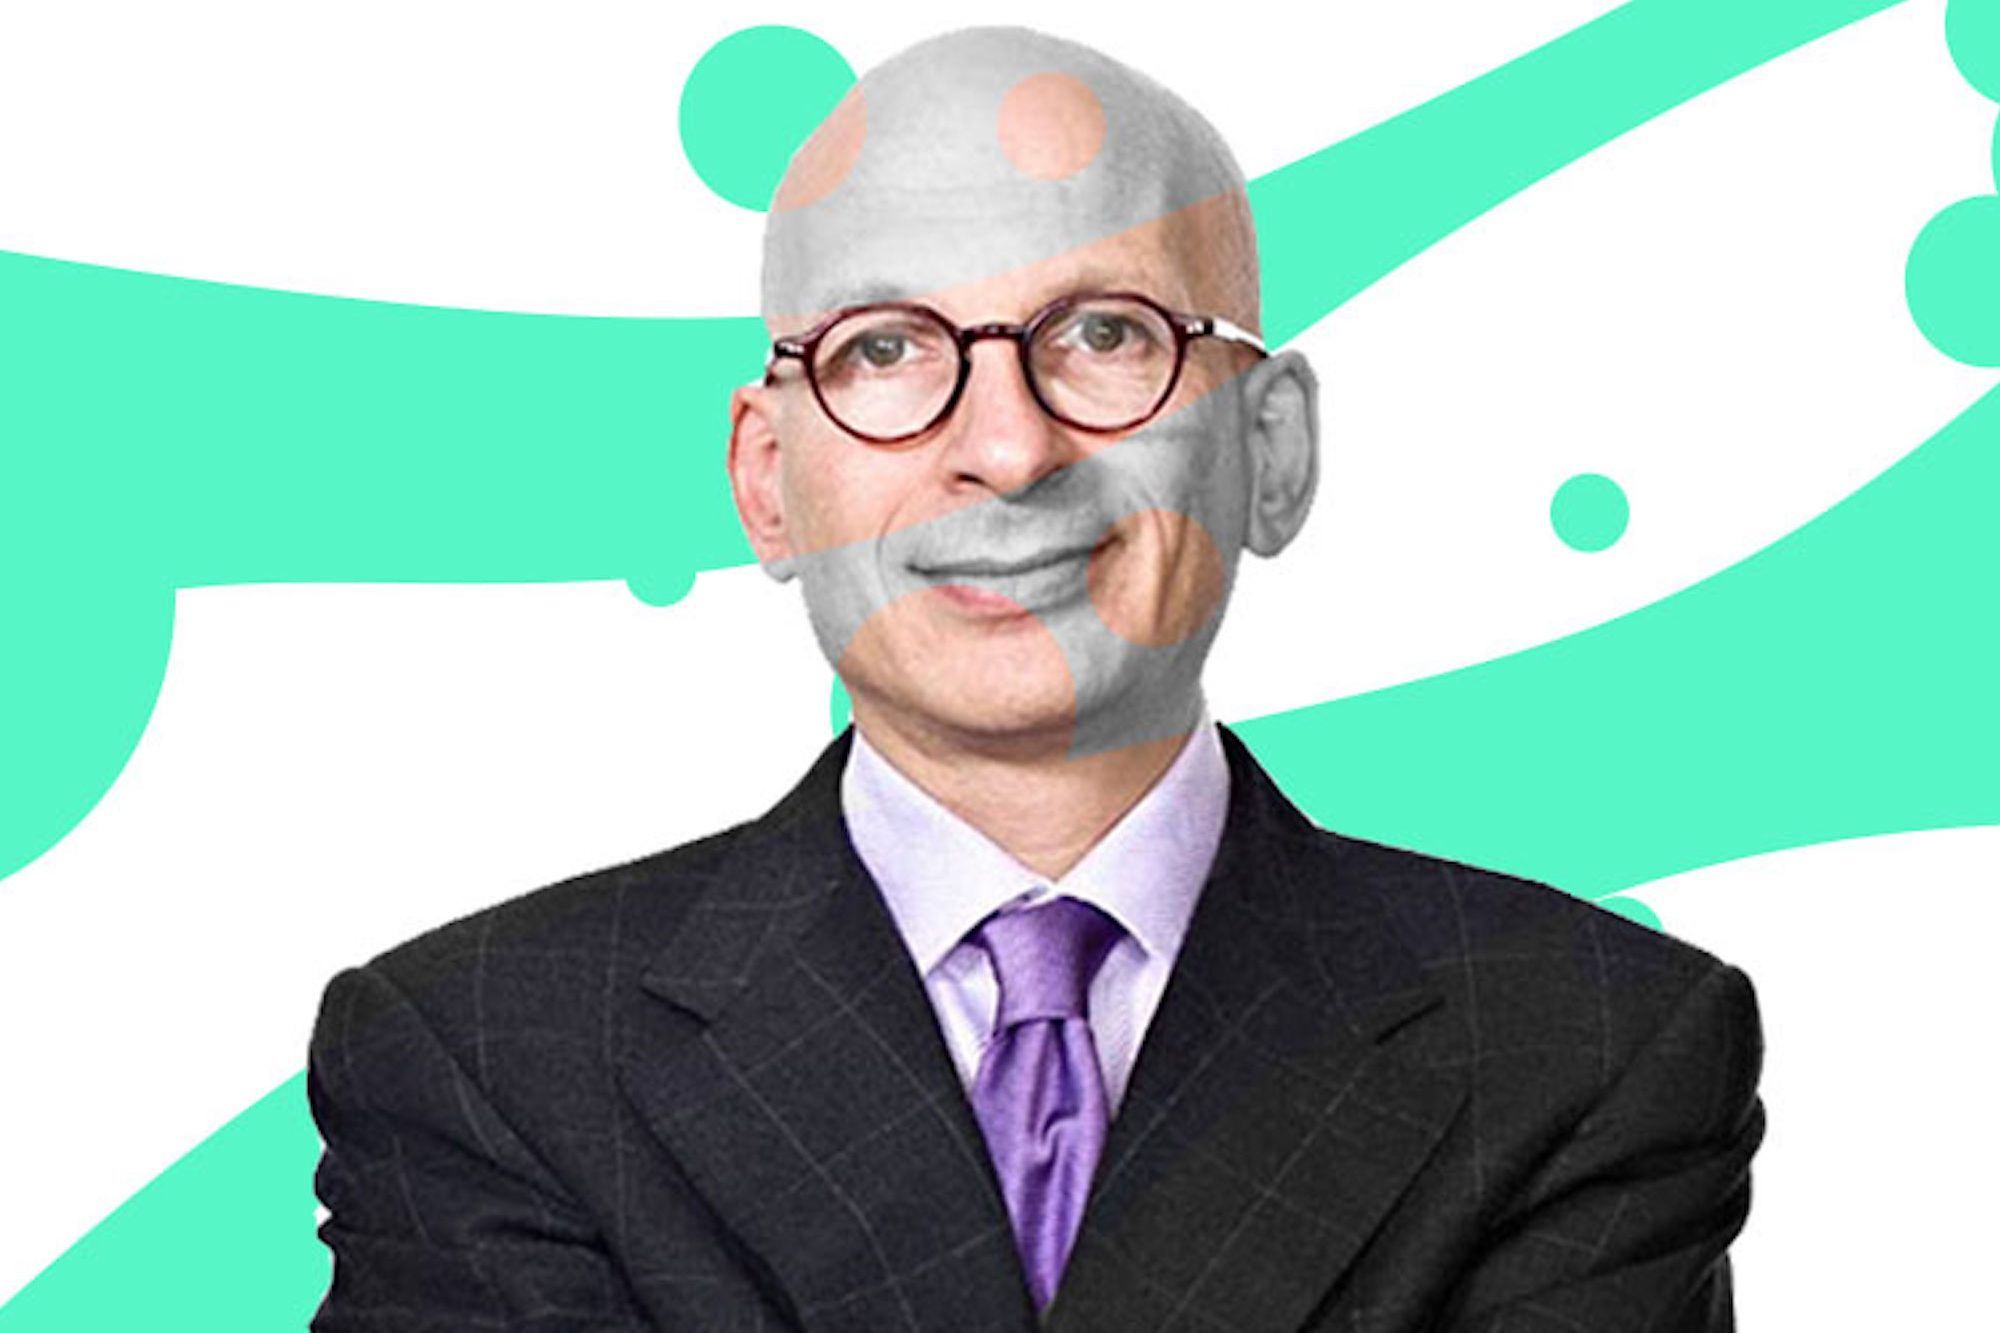 Become Your Own Boss With Help From The Best-Selling Author, Seth Godin